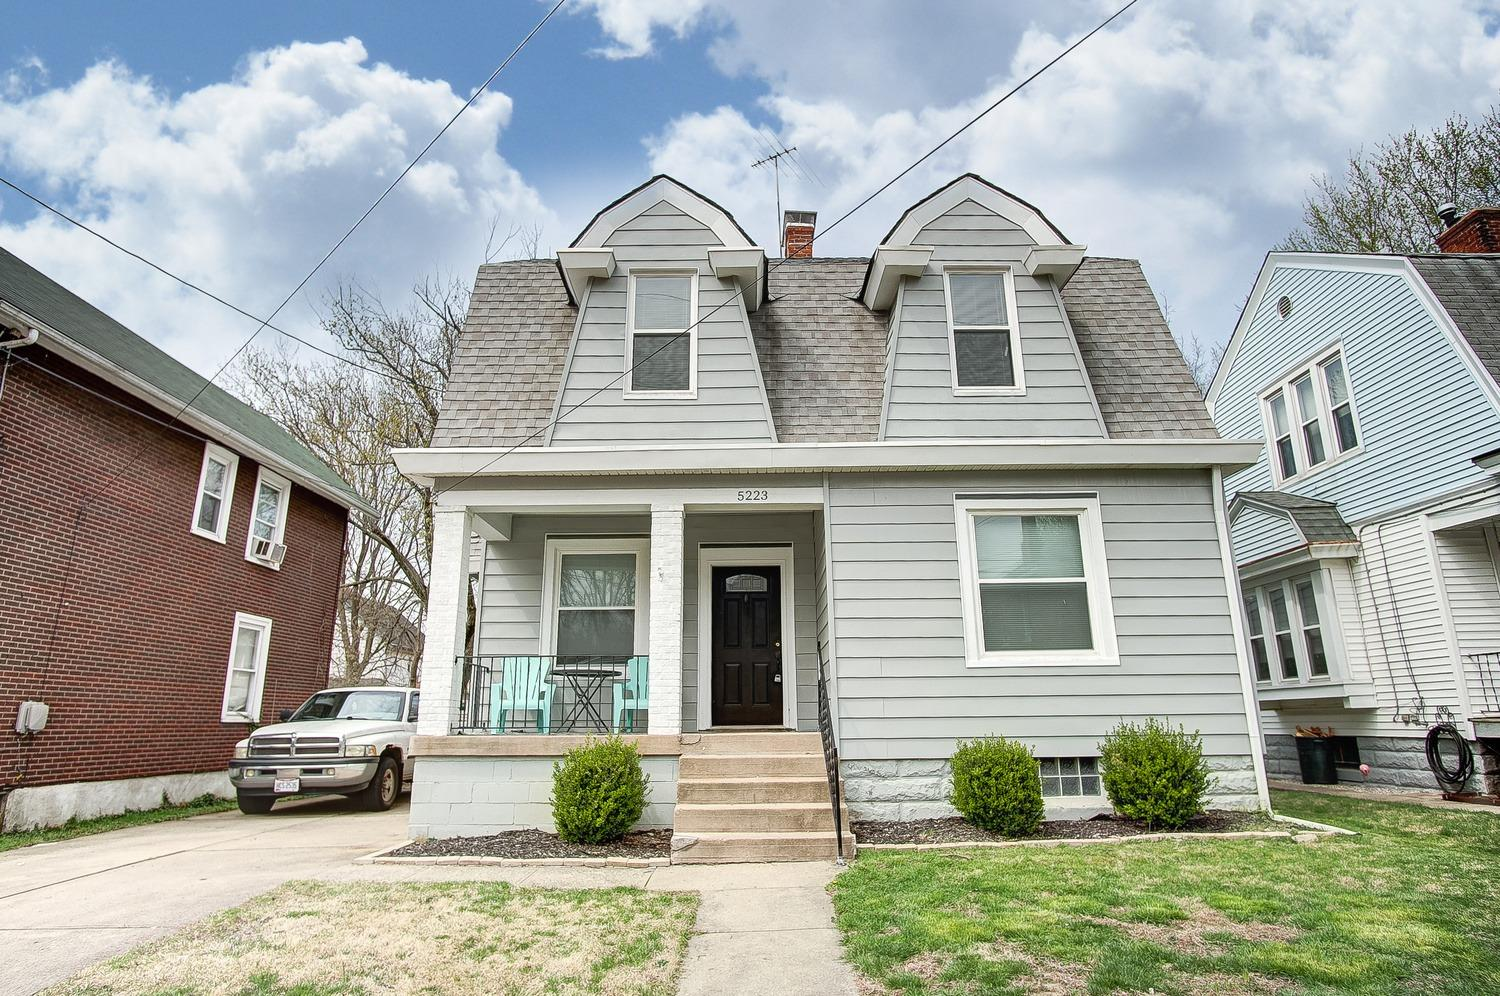 Photo 1 for 5223 Hunter Ave Norwood, OH 45212